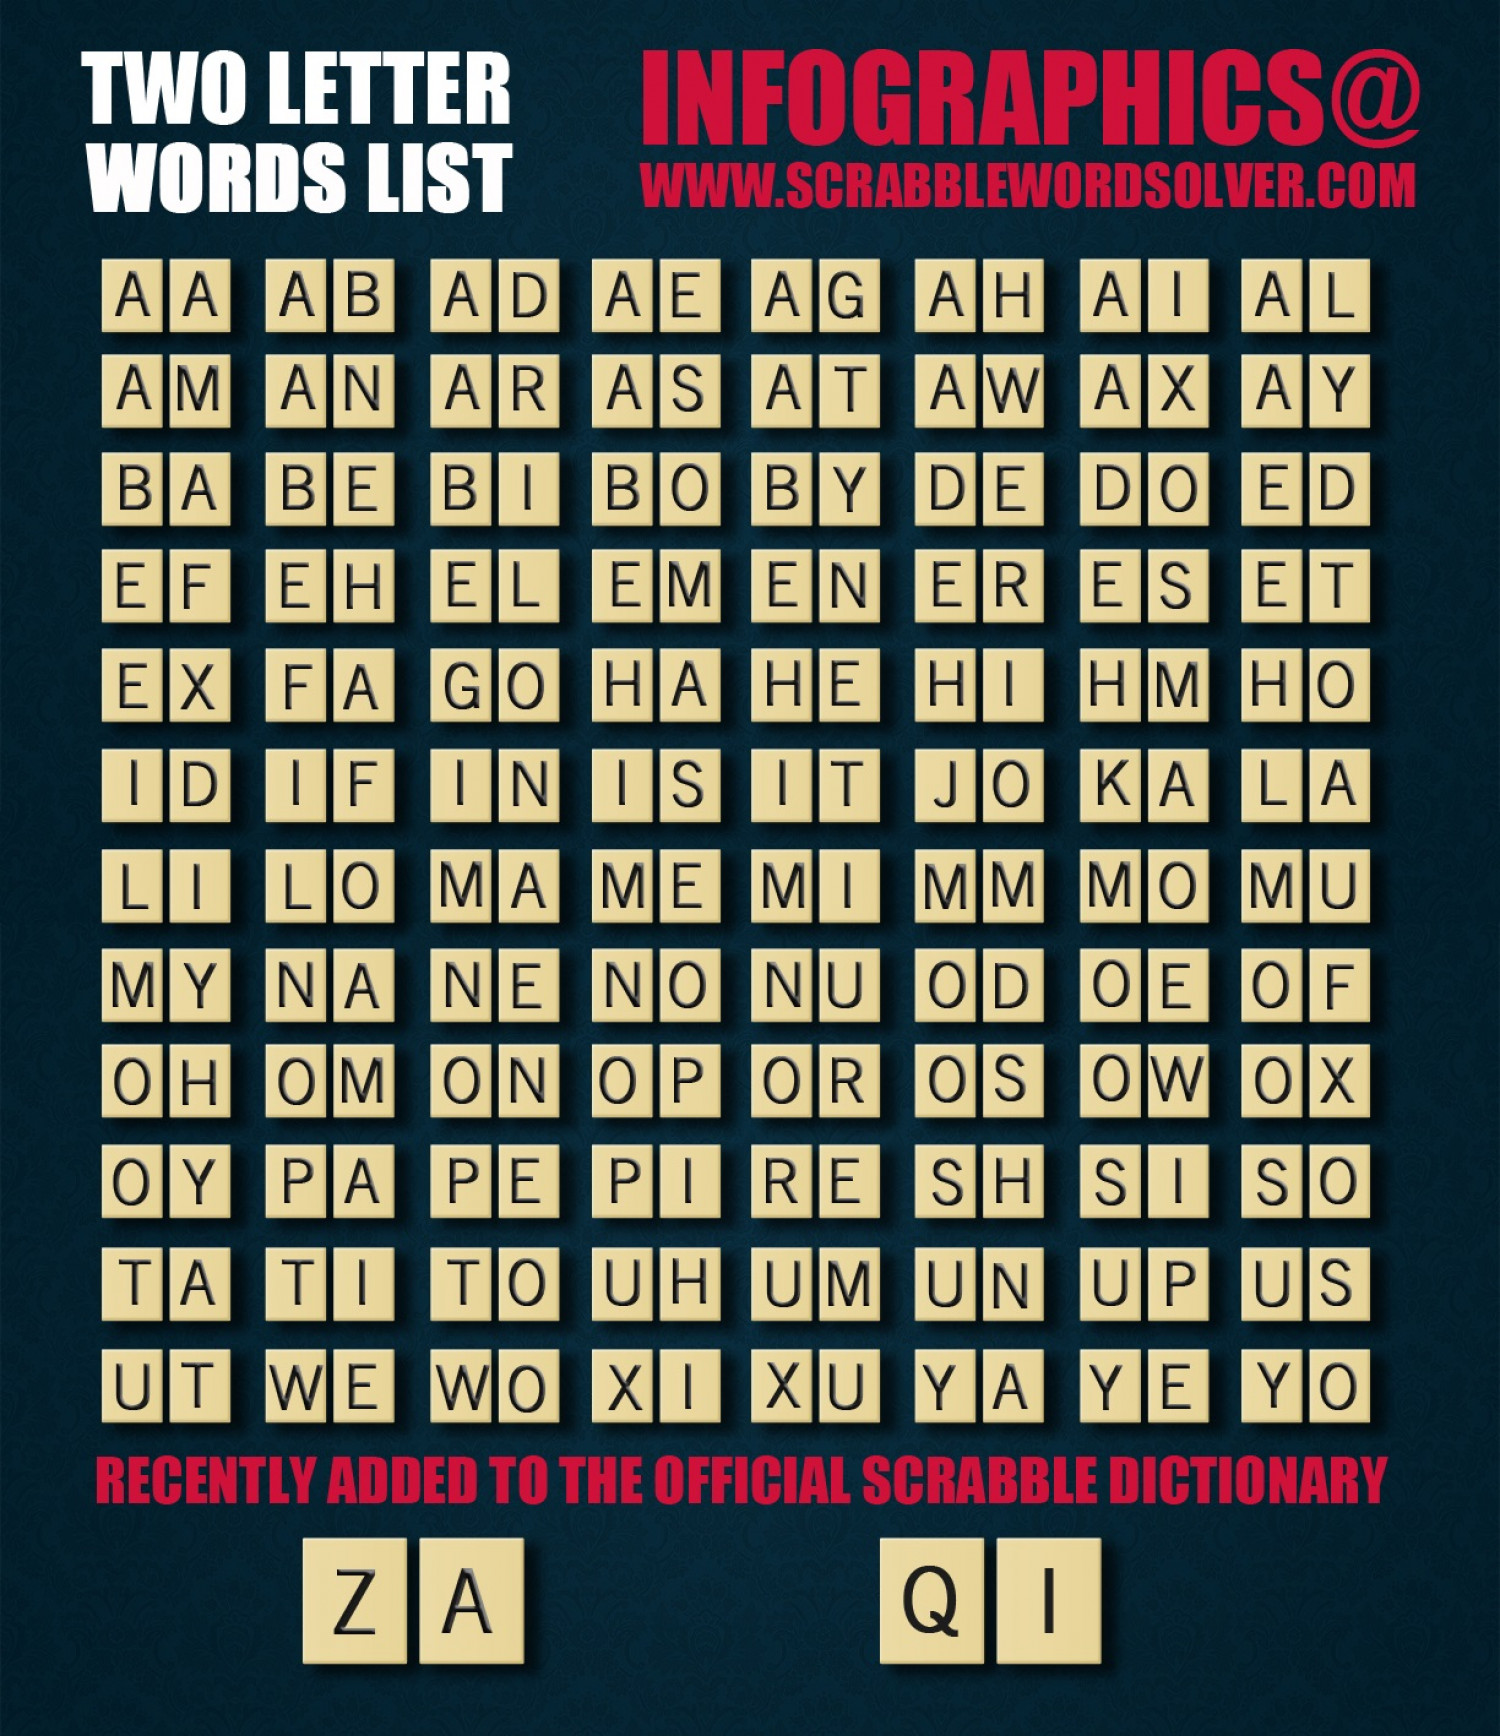 scrabble two letter words official 2 two letter word list for scrabble visual ly 24773 | official 2 two letter word list for scrabble 531348979415e w1500